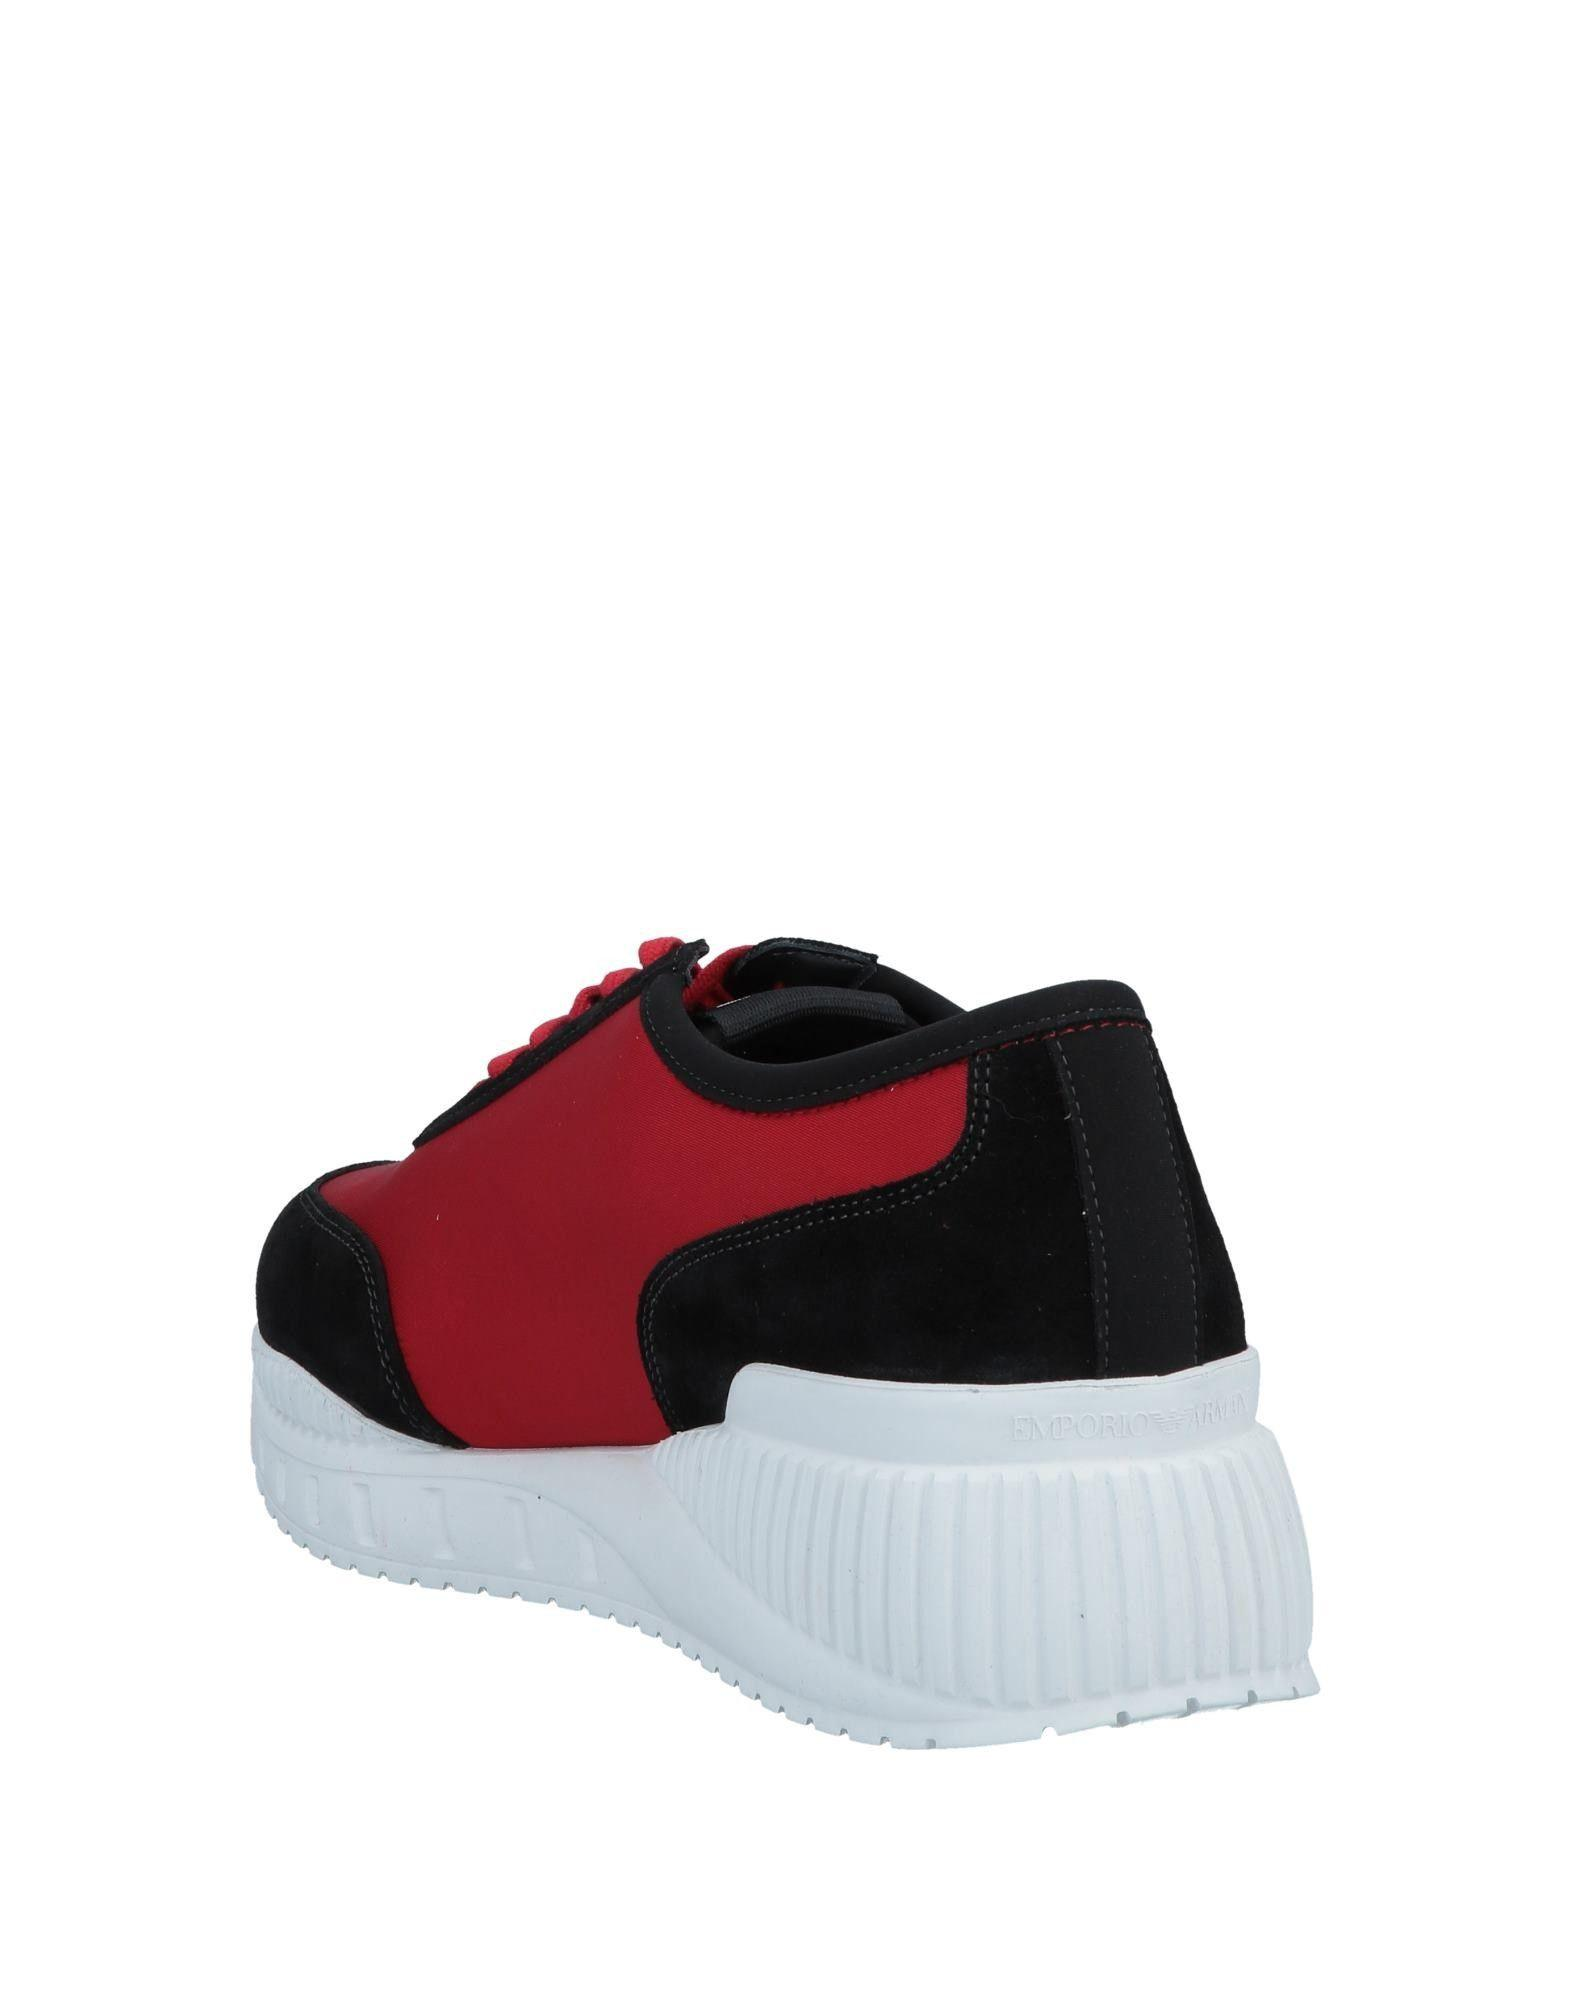 brand new d3712 115b6 Lyst - Emporio Armani Low-tops  Sneakers in Red for Men